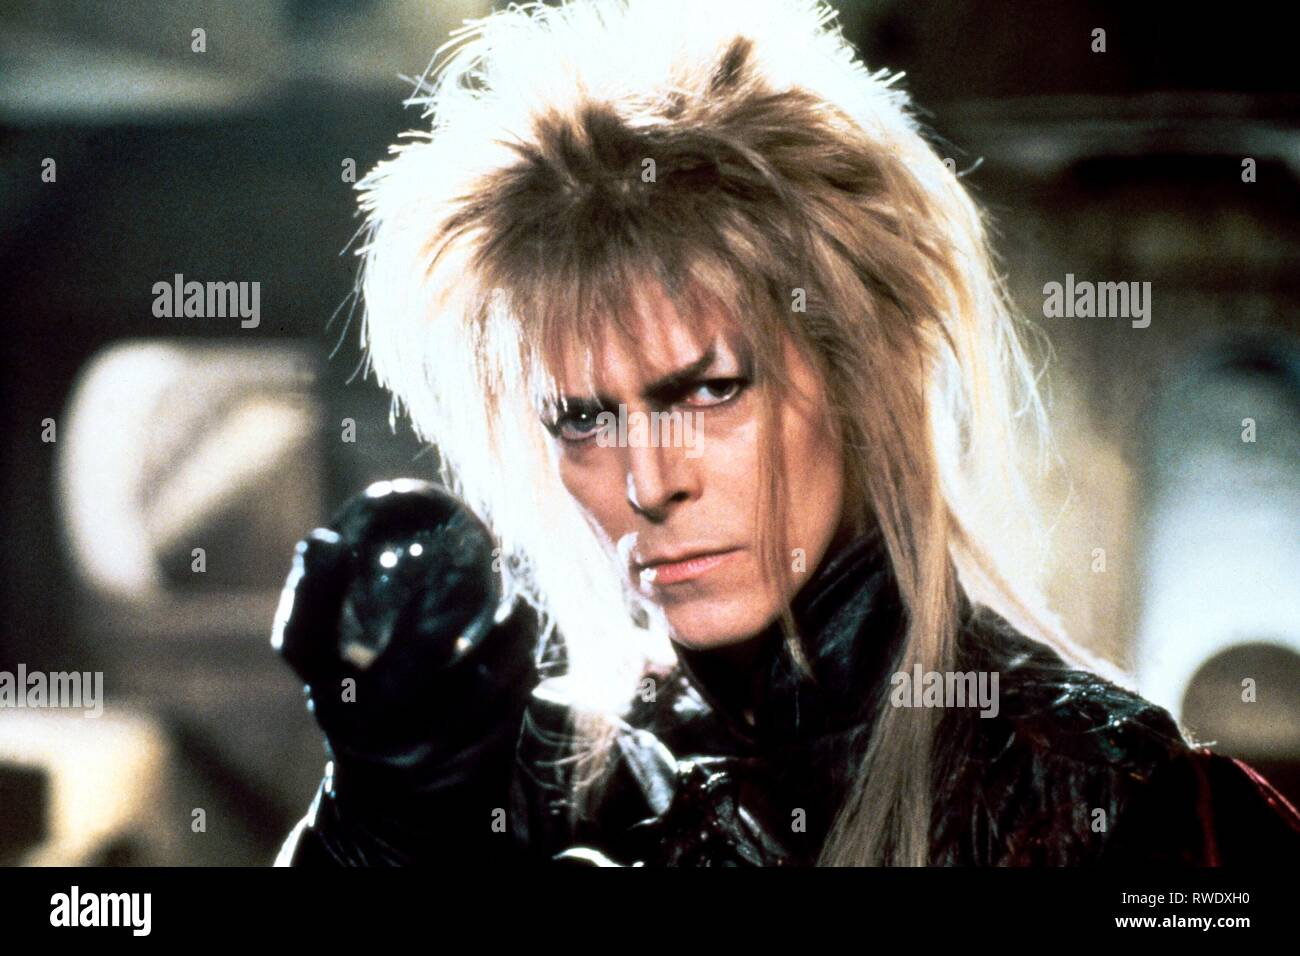 Jareth The Goblin King High Resolution Stock Photography And Images Alamy